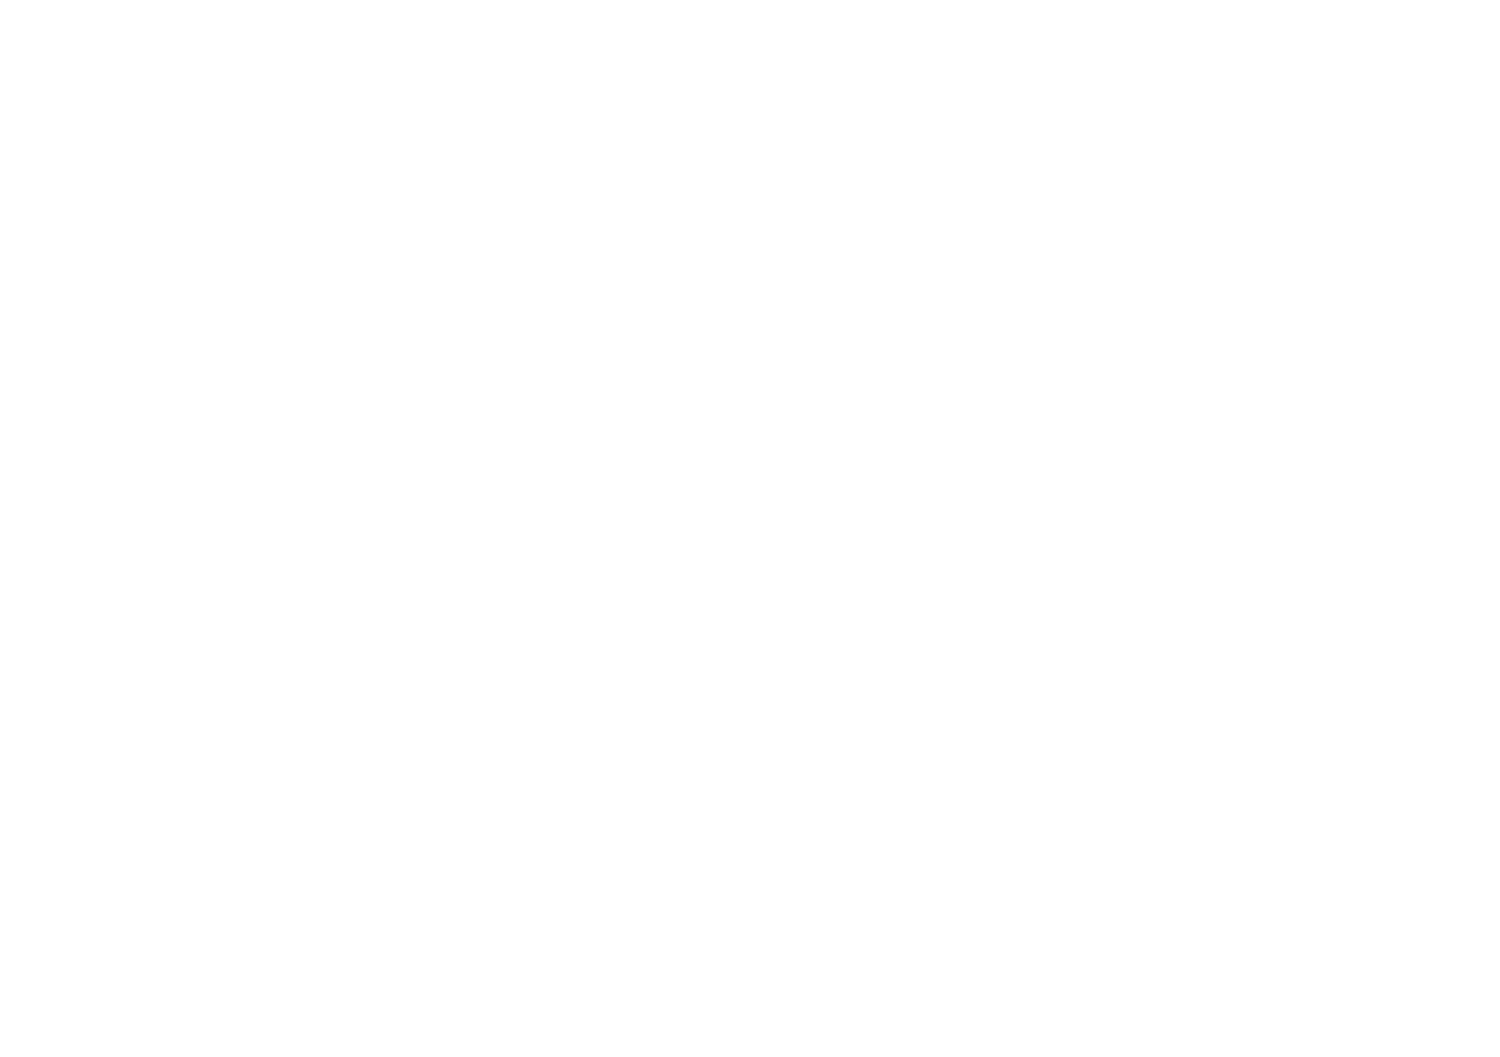 JCB Electrical And Power Services